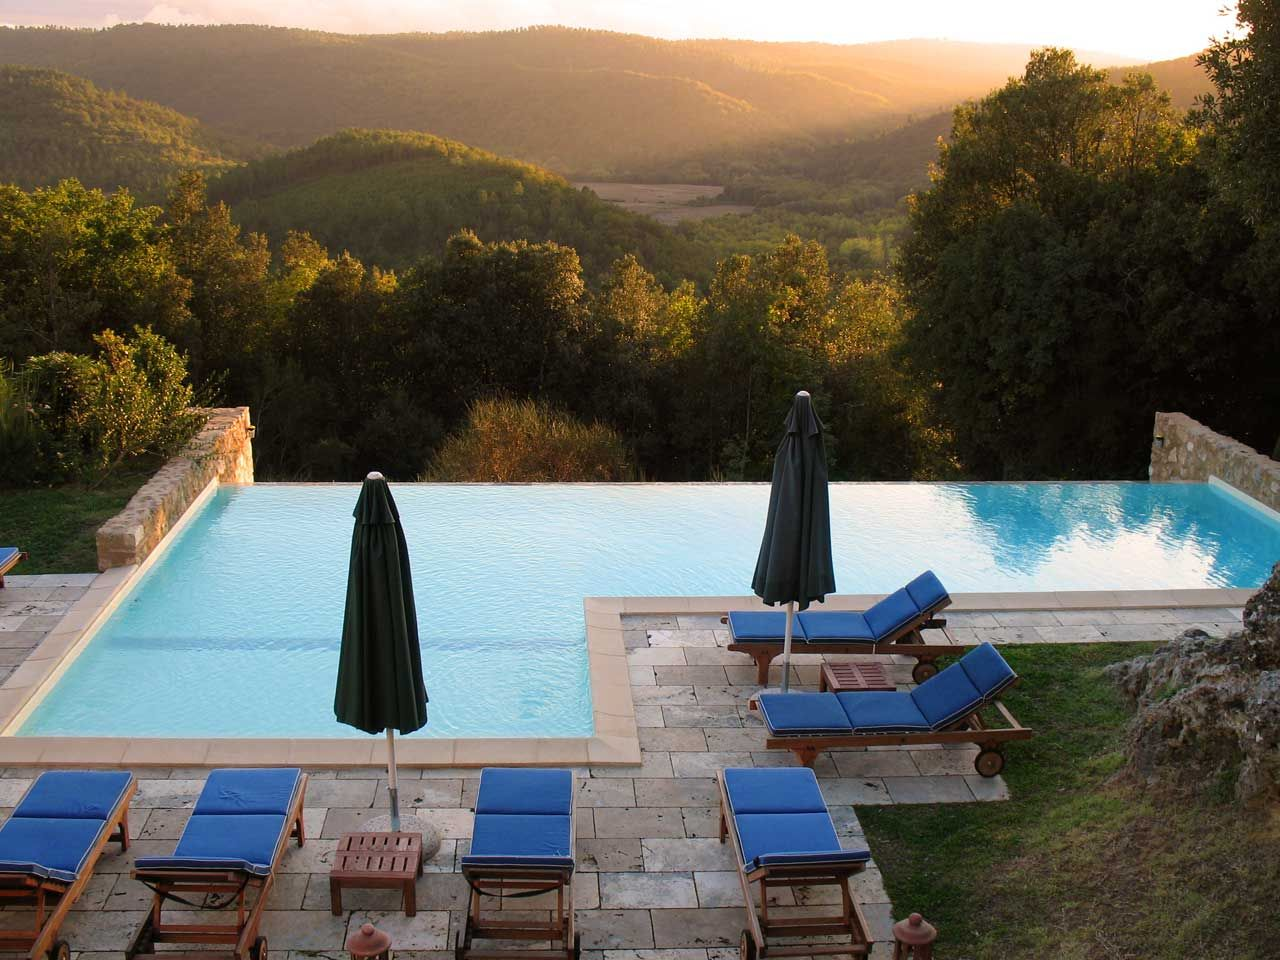 Villas In Tuscany Siena Villa Pipistrelli Swimming Pool Pinterest Siena Tuscany And